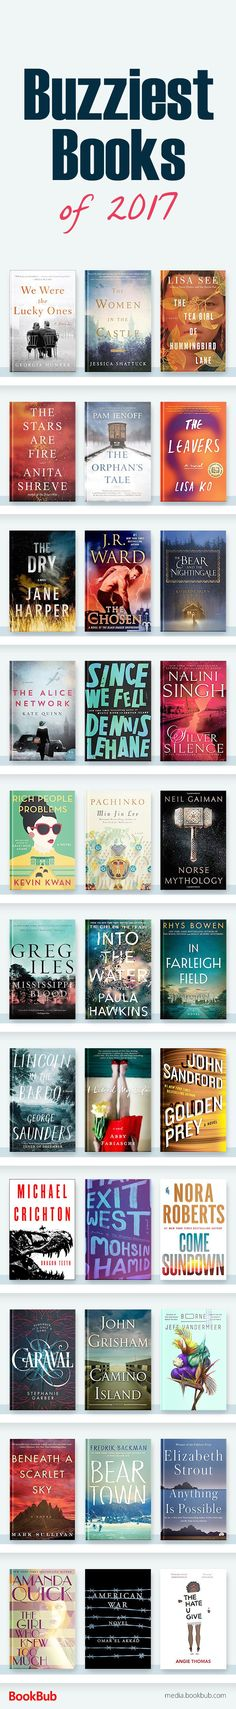 506 Best Book Club Books Images